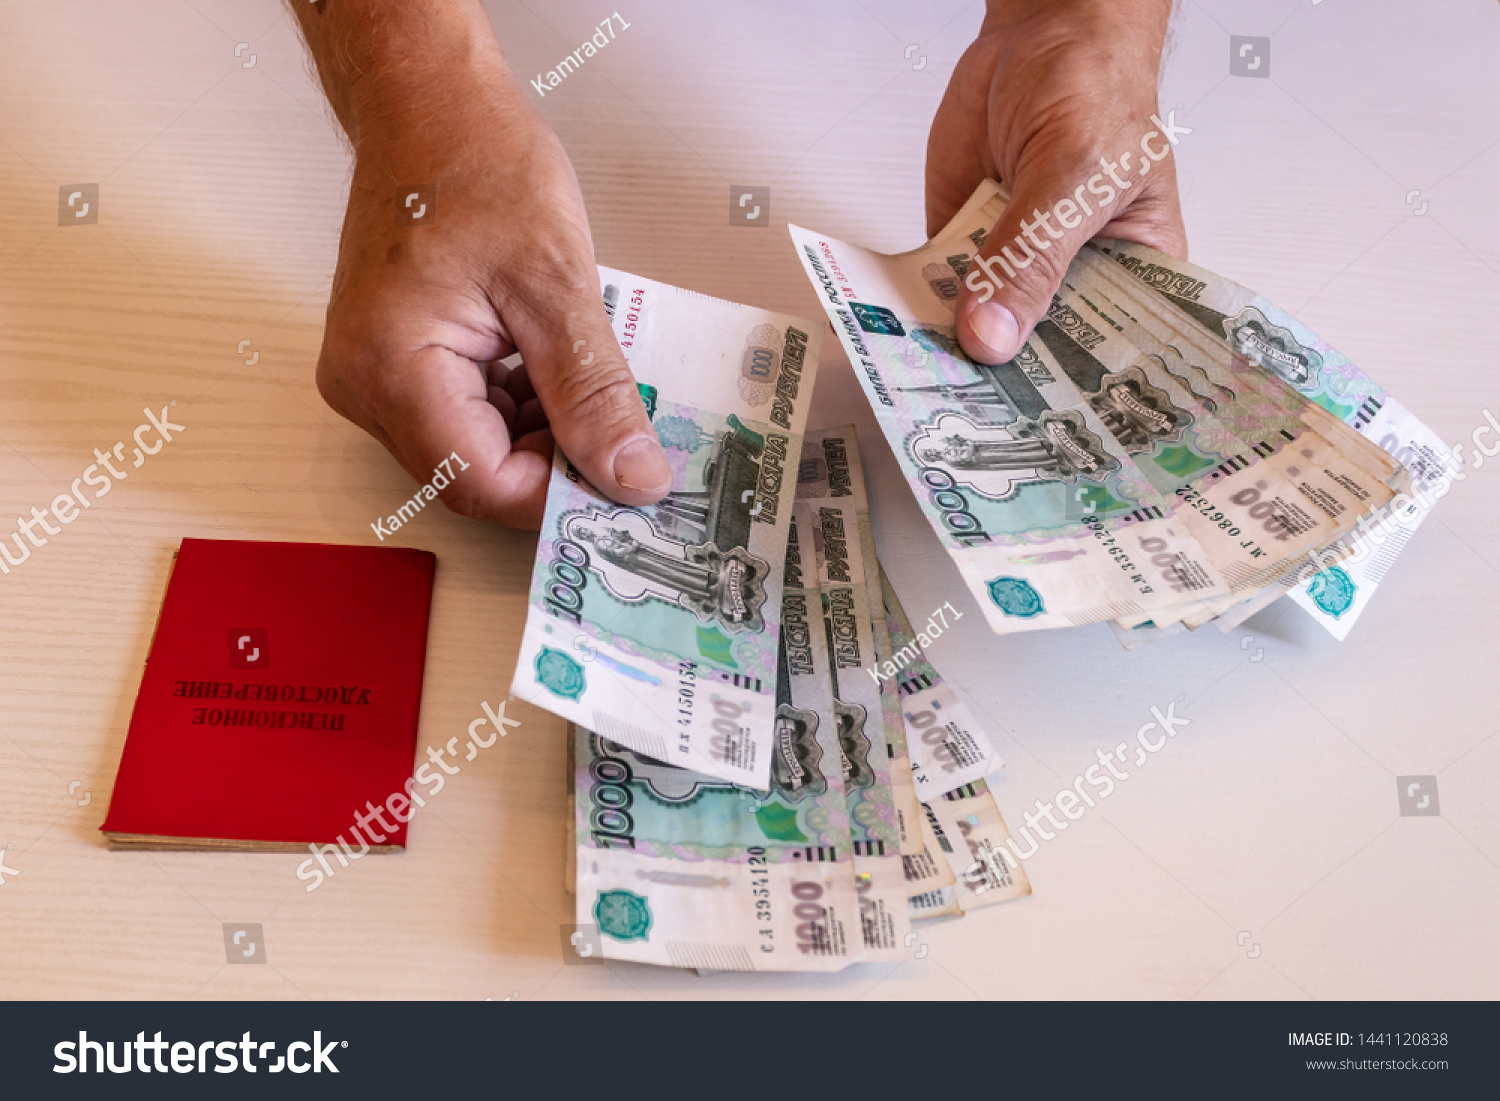 the hands of the pensioner considers bills in 1000 rubles, a pension certificate. The inscription on the certificate: 'pension certificate' #1441120838